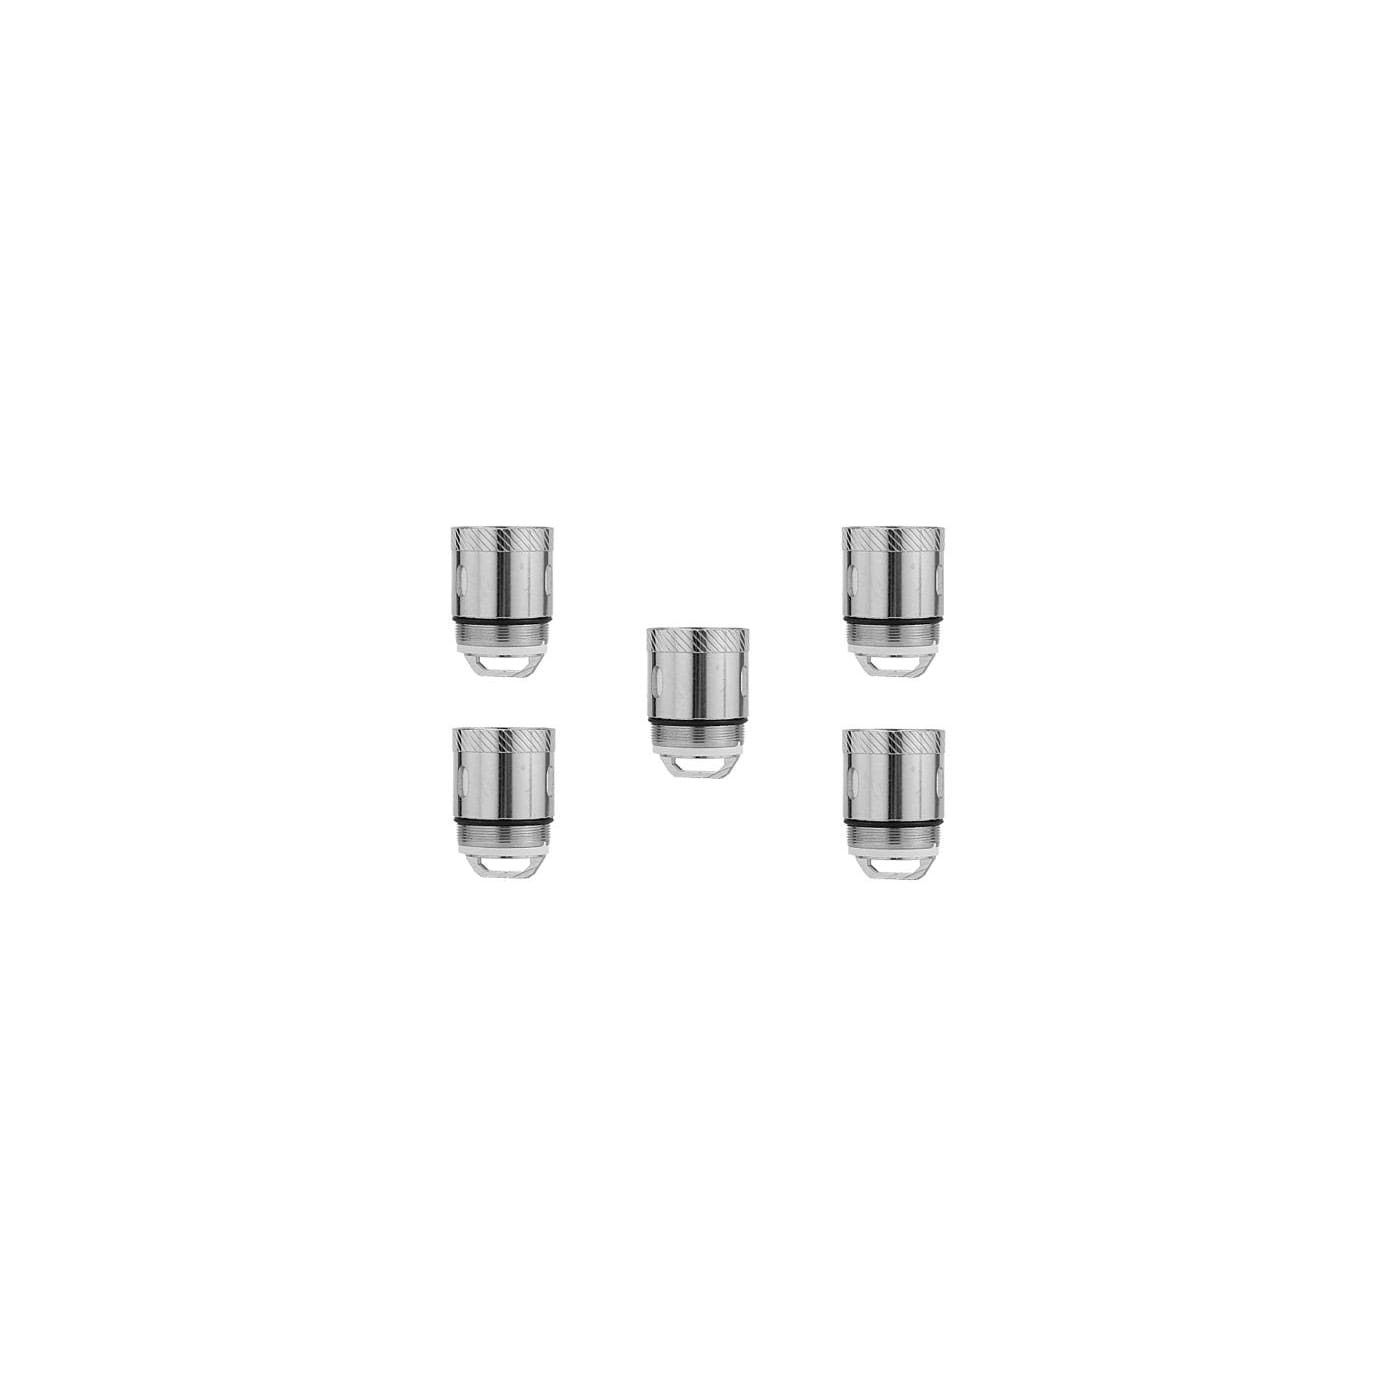 Wismec Dual Replacement Coil - 5 Pack